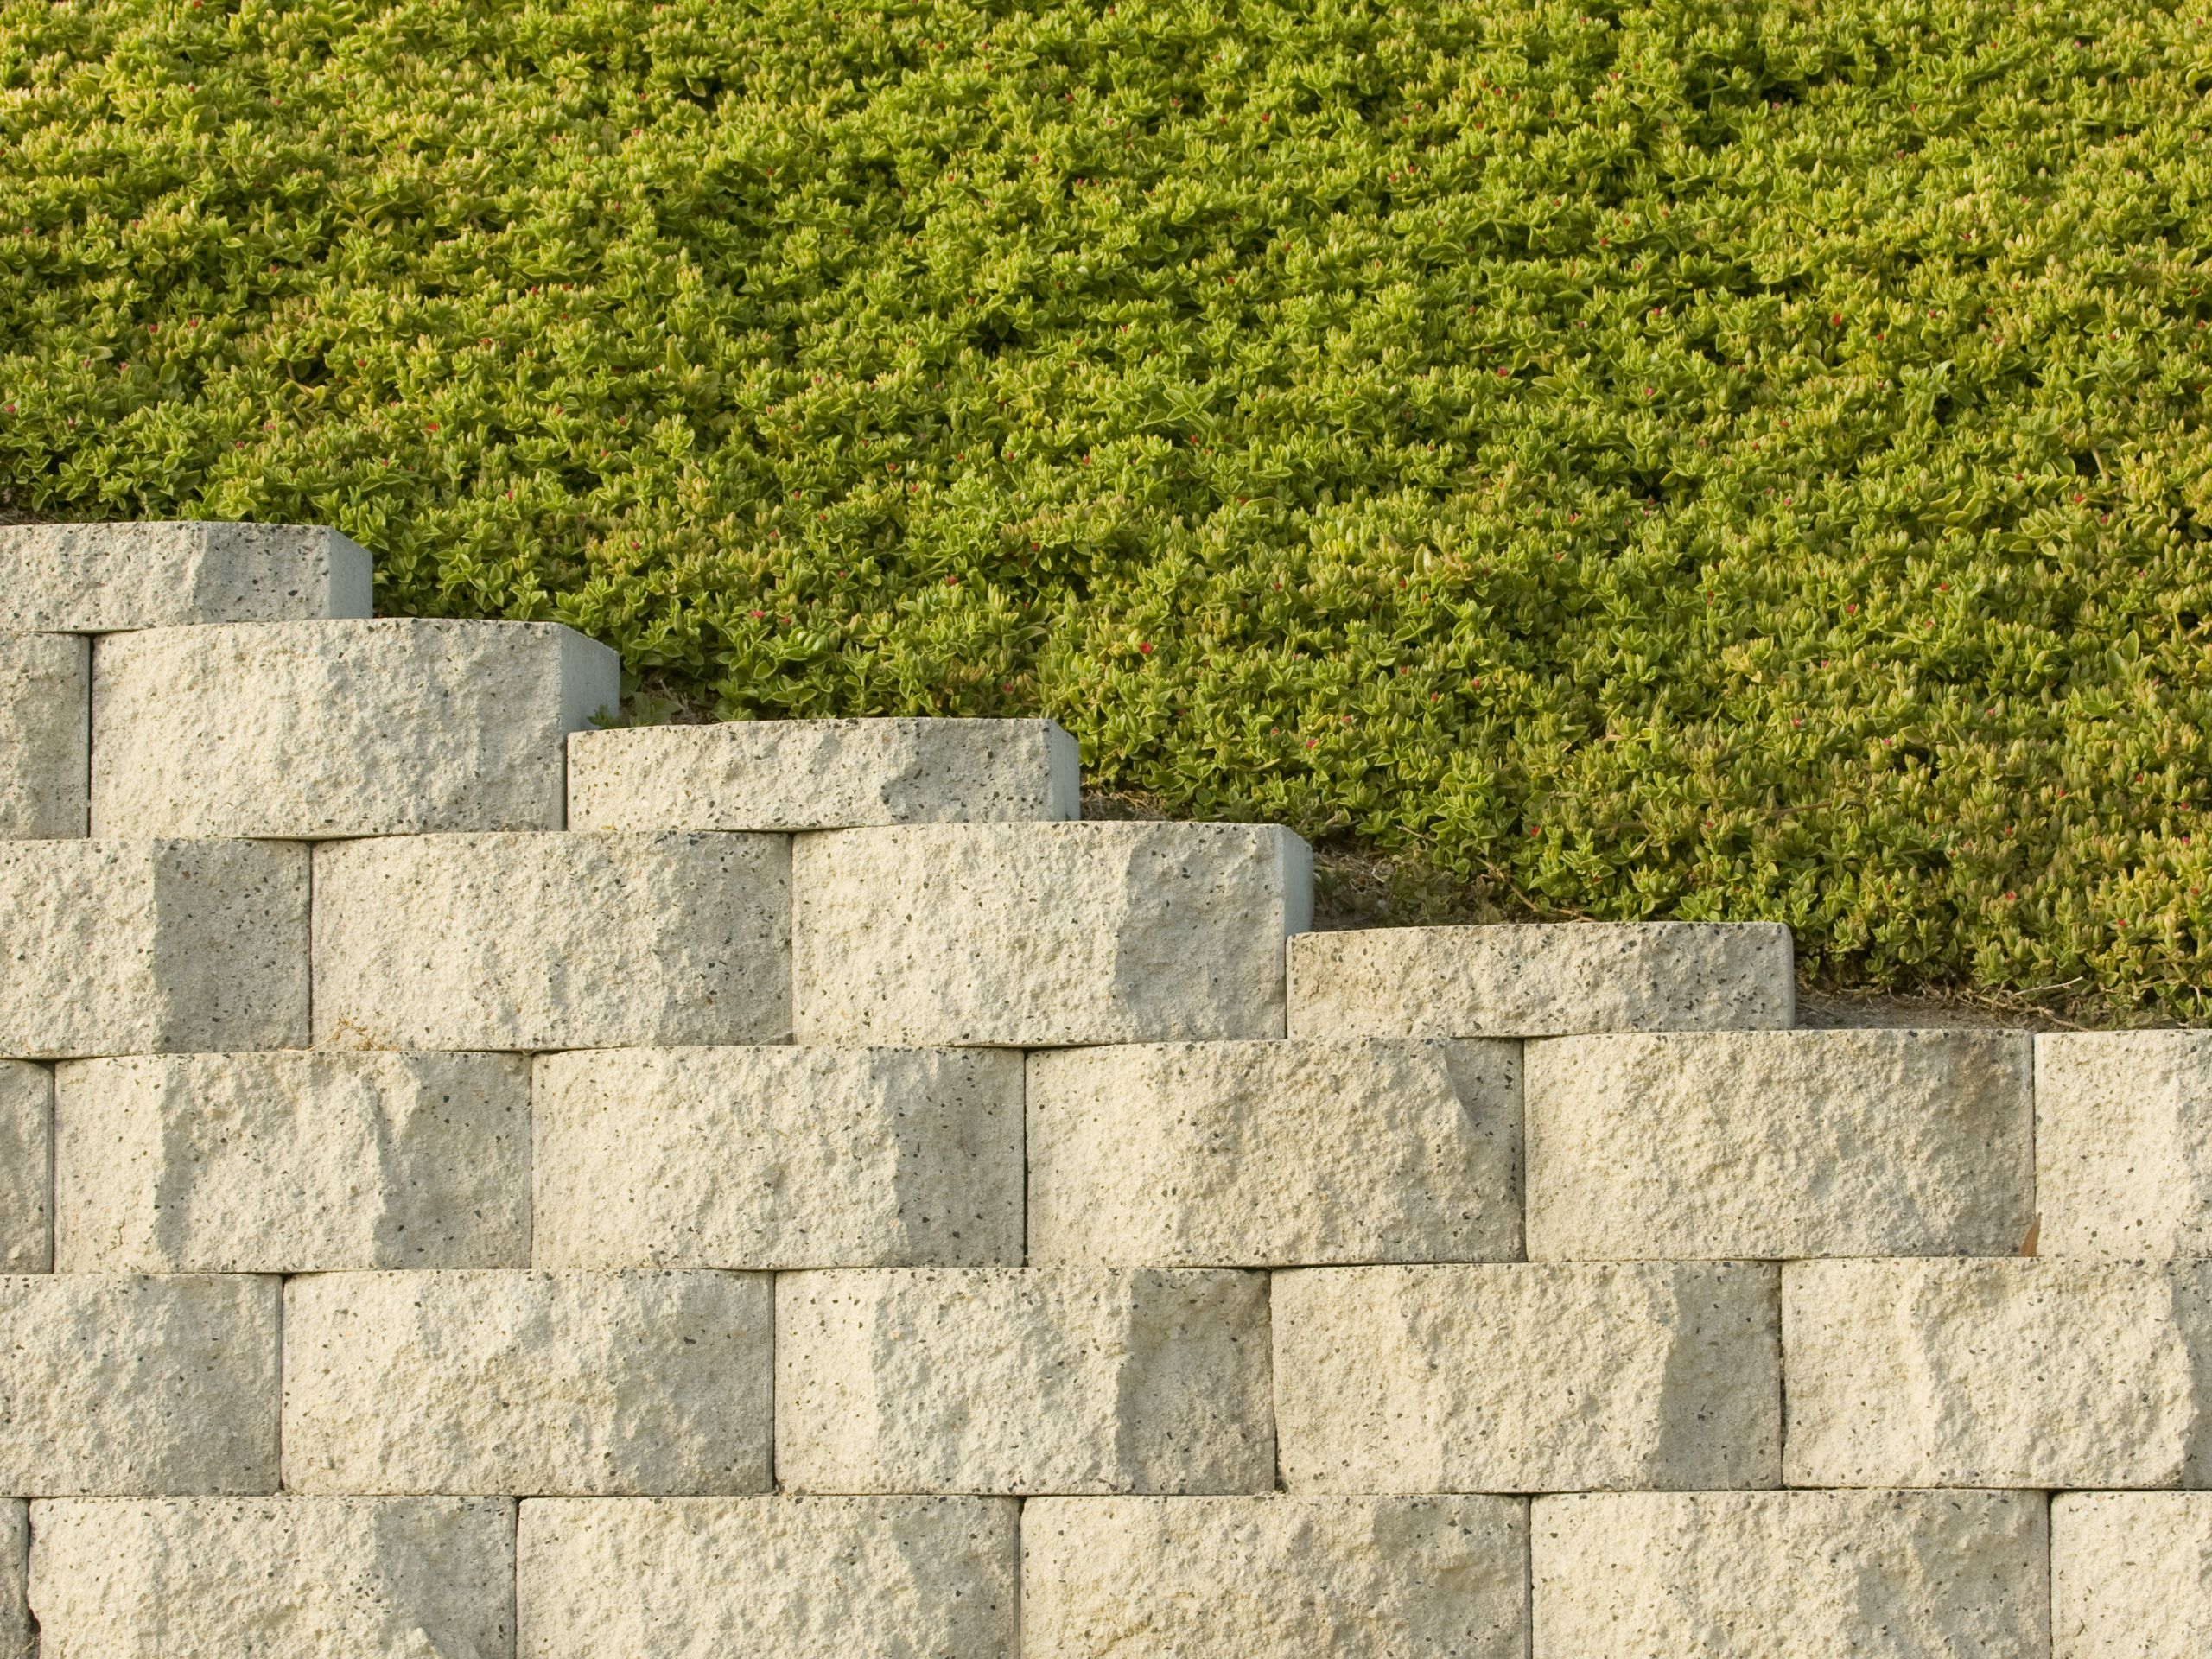 Mse Earth Retaining Wall Option Saves Money Time And Equipment